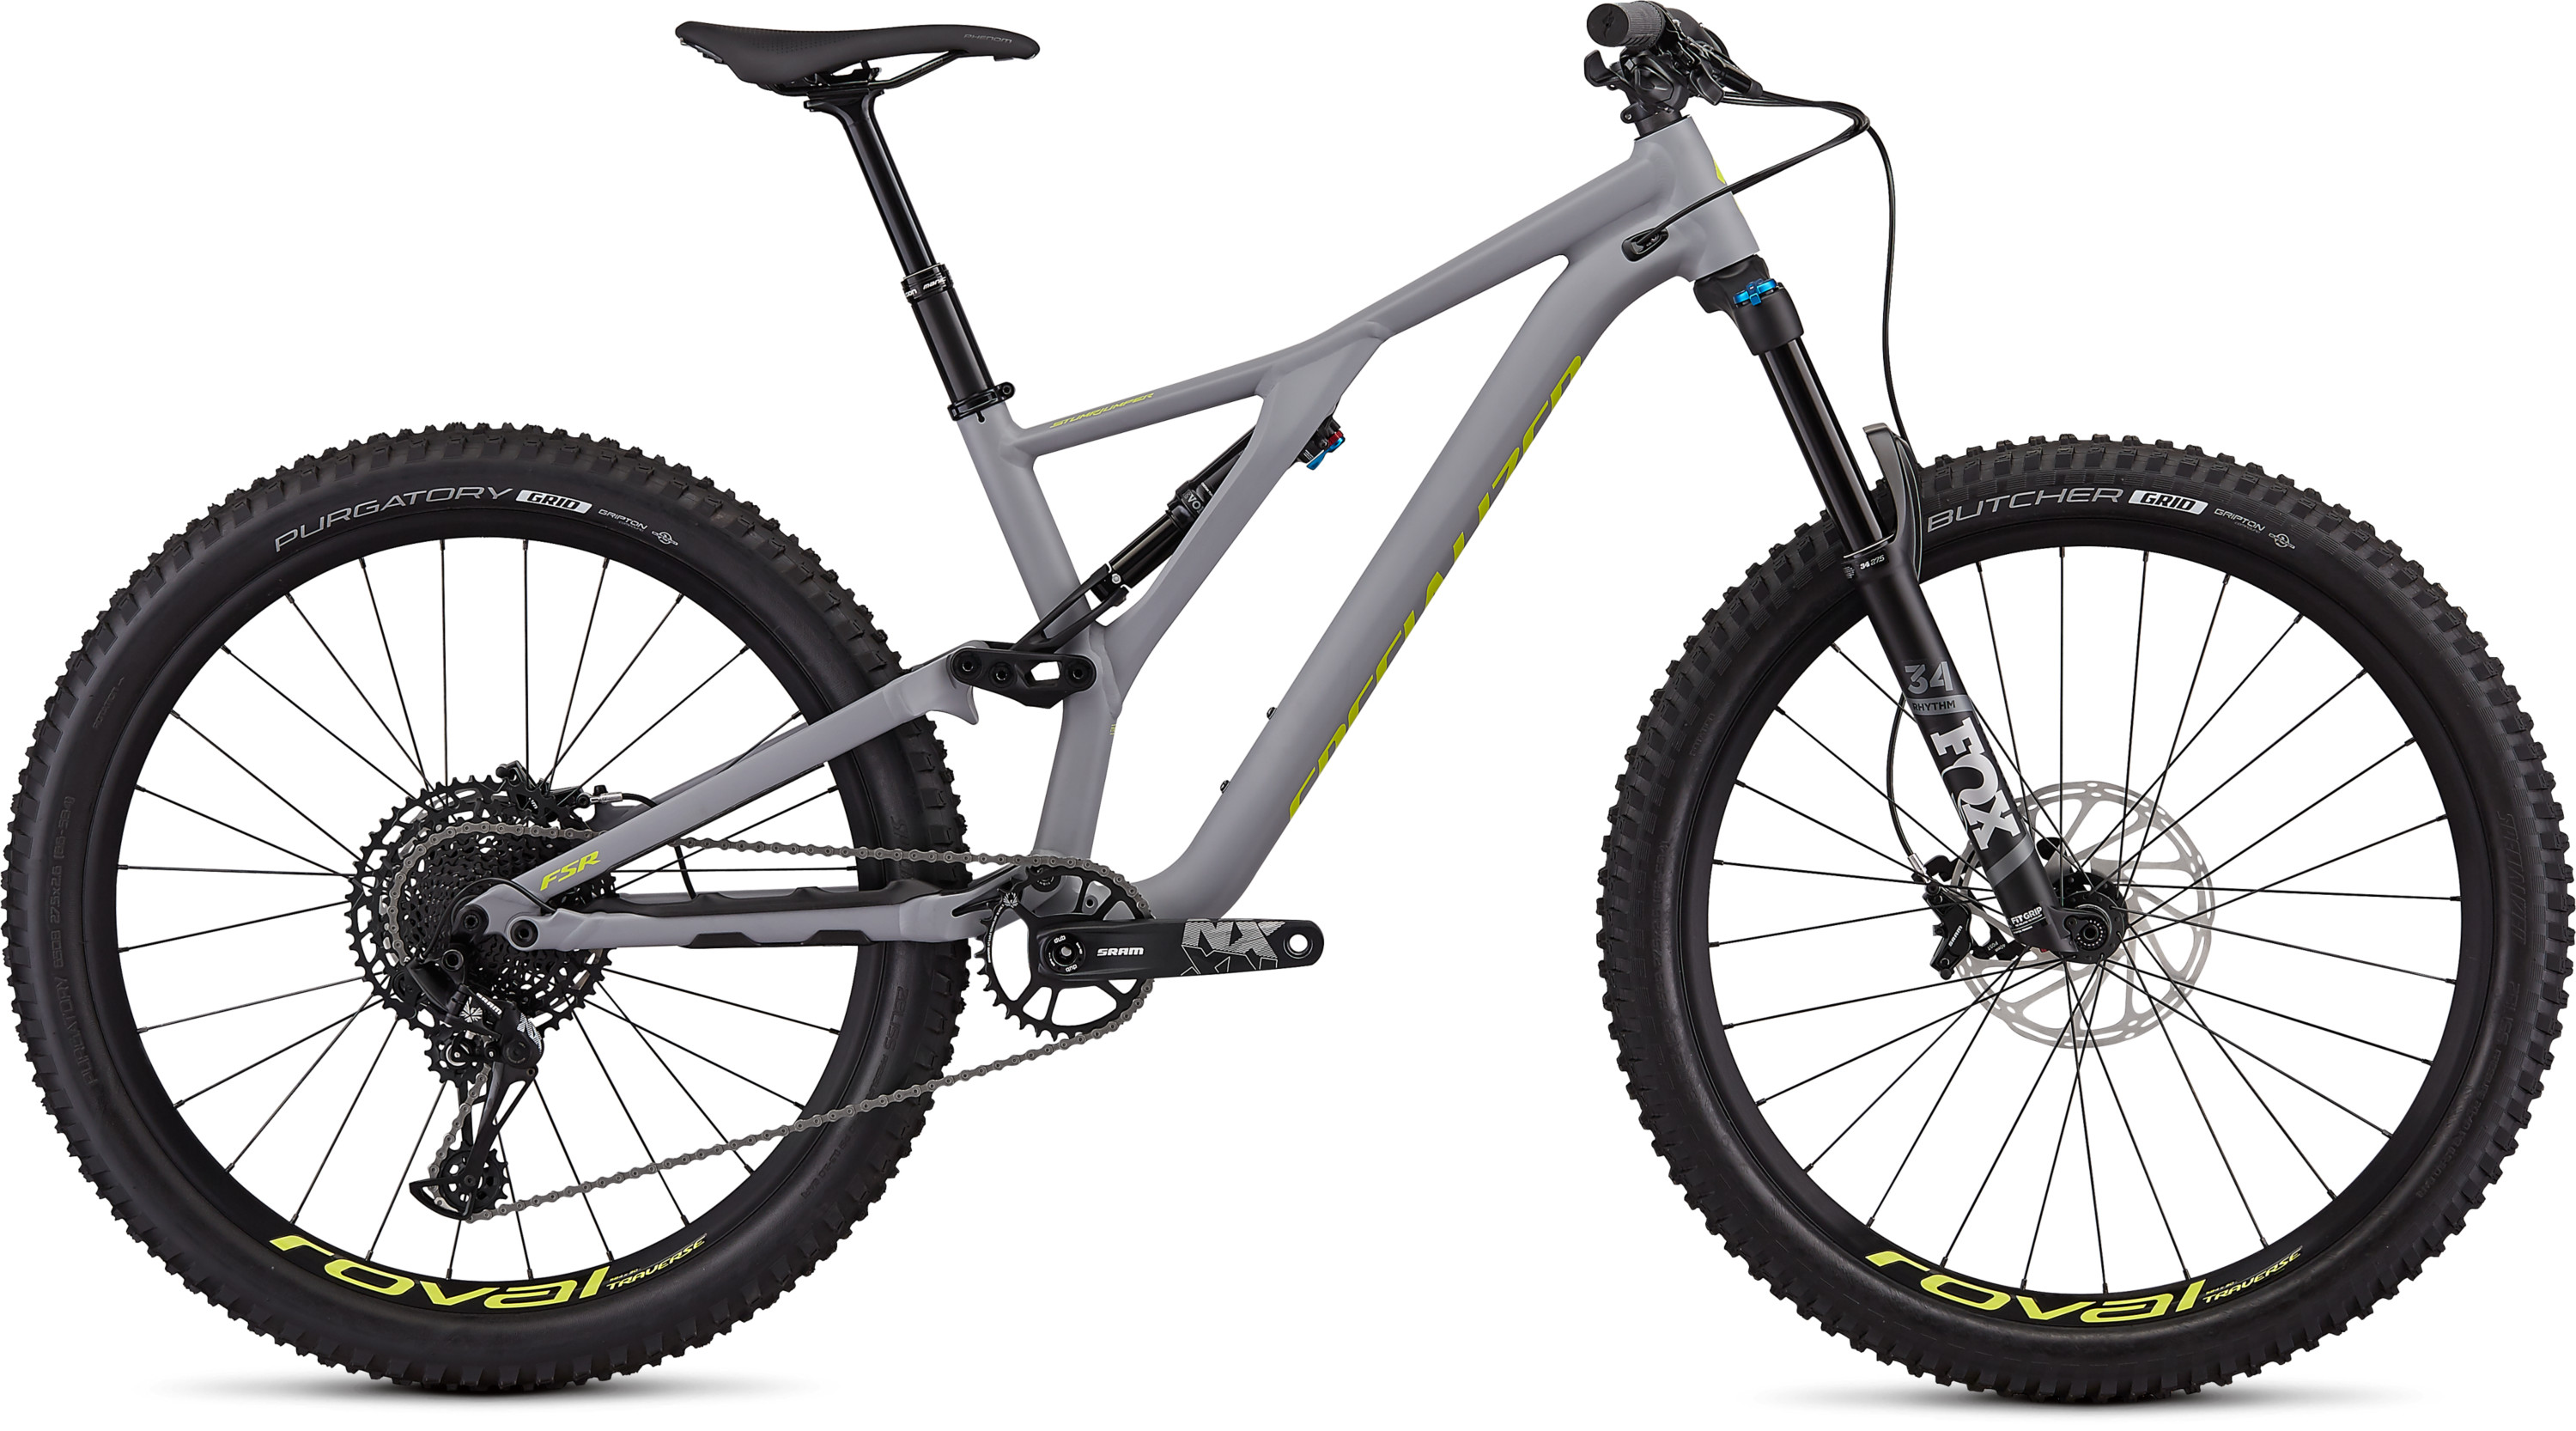 Stumpjumper Fsr Men Comp 27.5 12 Spd